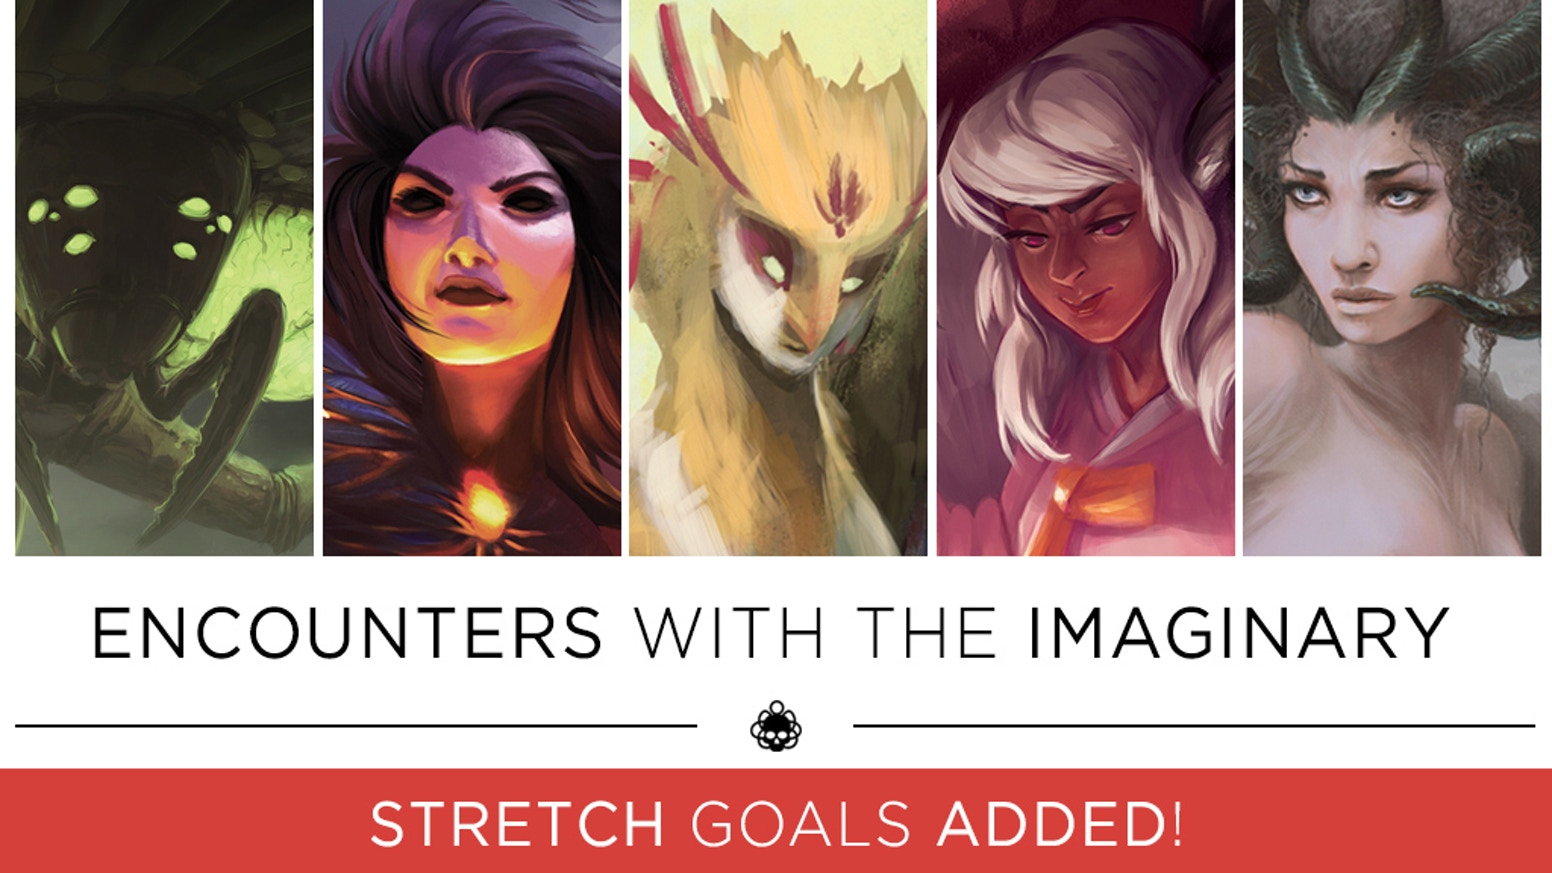 Encounters with the Imaginary is a collaborative art book featuring fantastical illustrations, wondrous narratives, and artistic insights. Volume 1 is available for purchase - and Volume 2 is now available for pre-order!